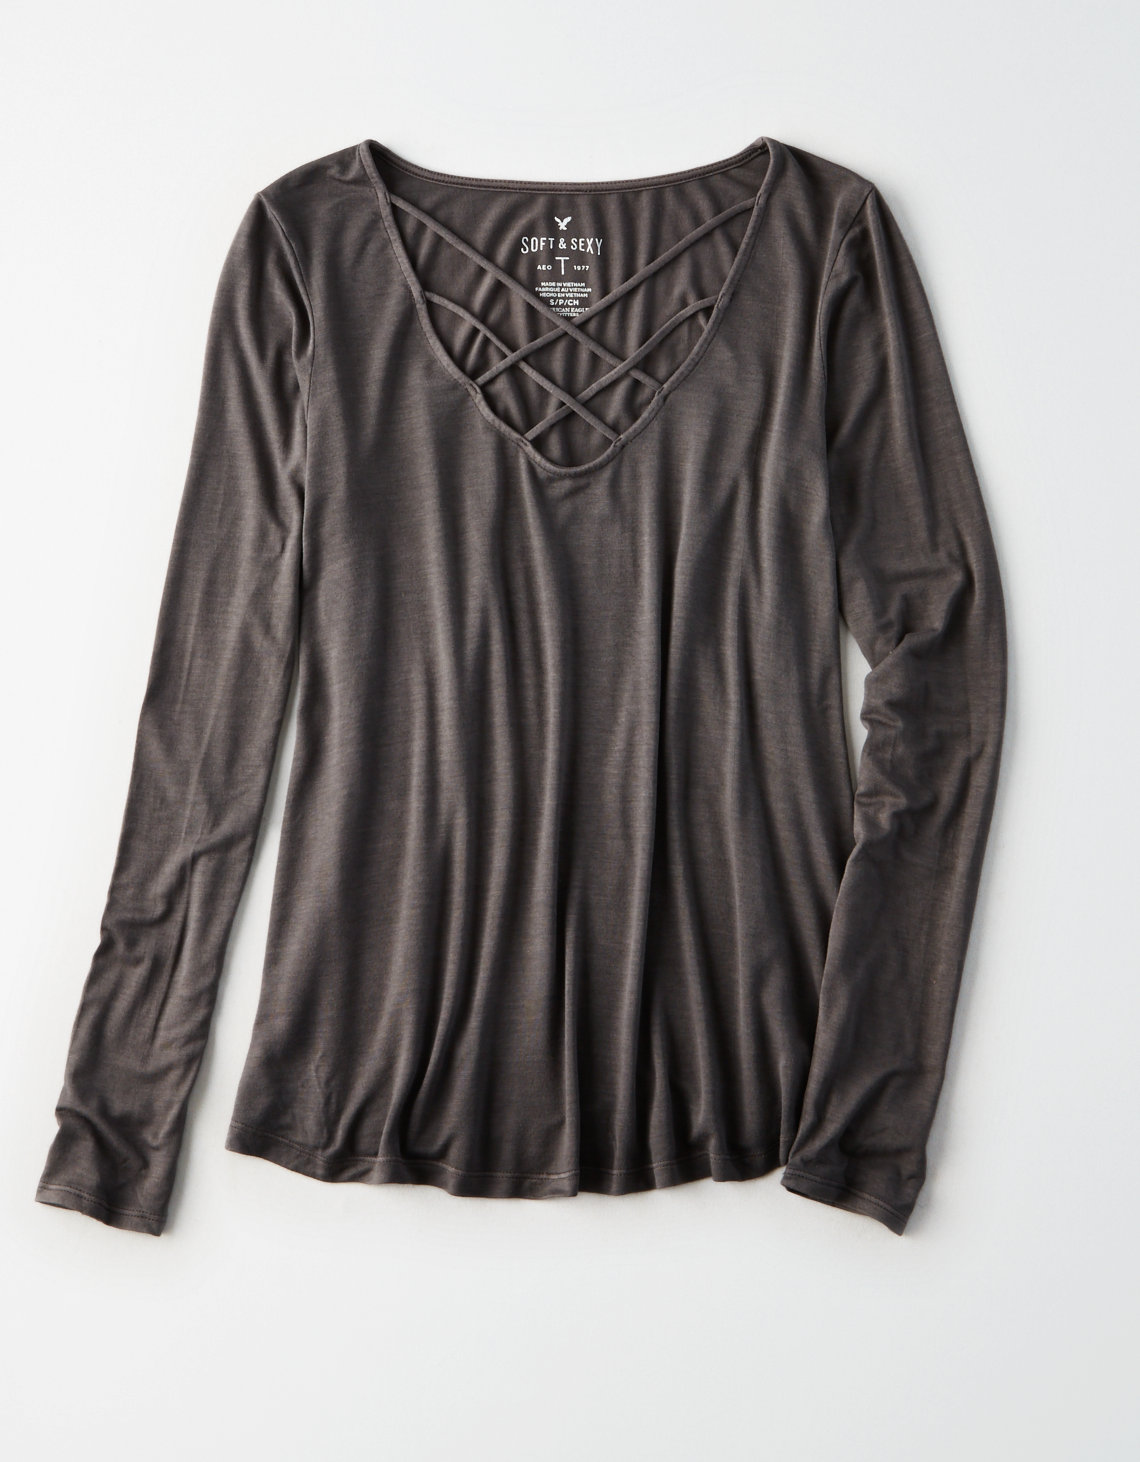 AE SOFT & SEXY CAGE FRONT T-SHIRT